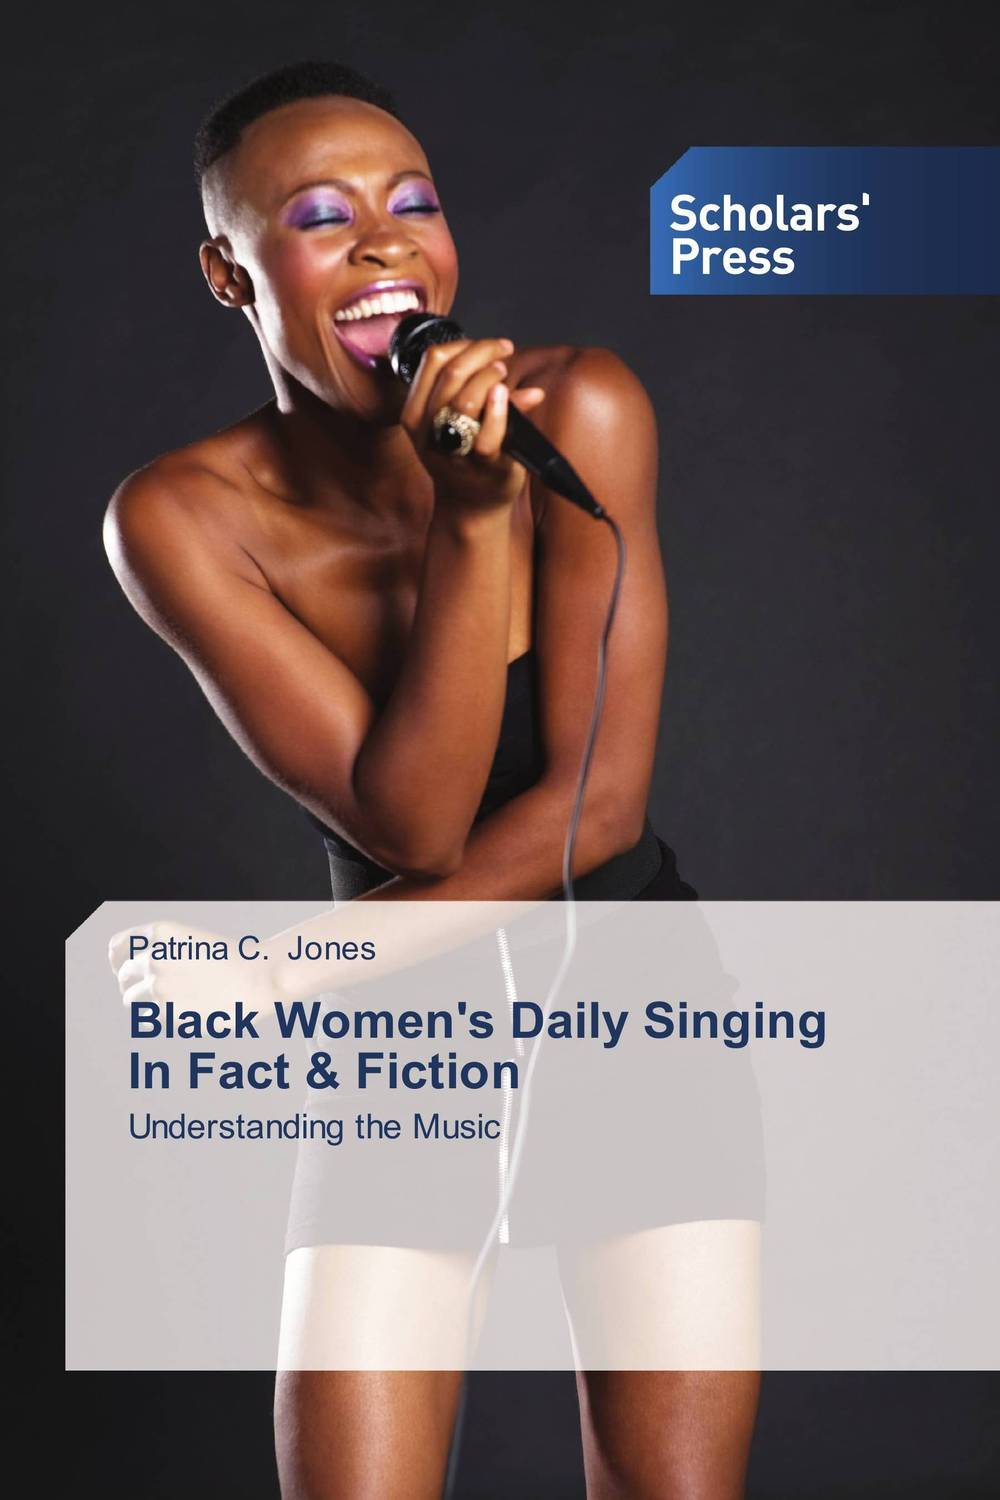 Black Women's Daily Singing In Fact & Fiction faulks on fiction